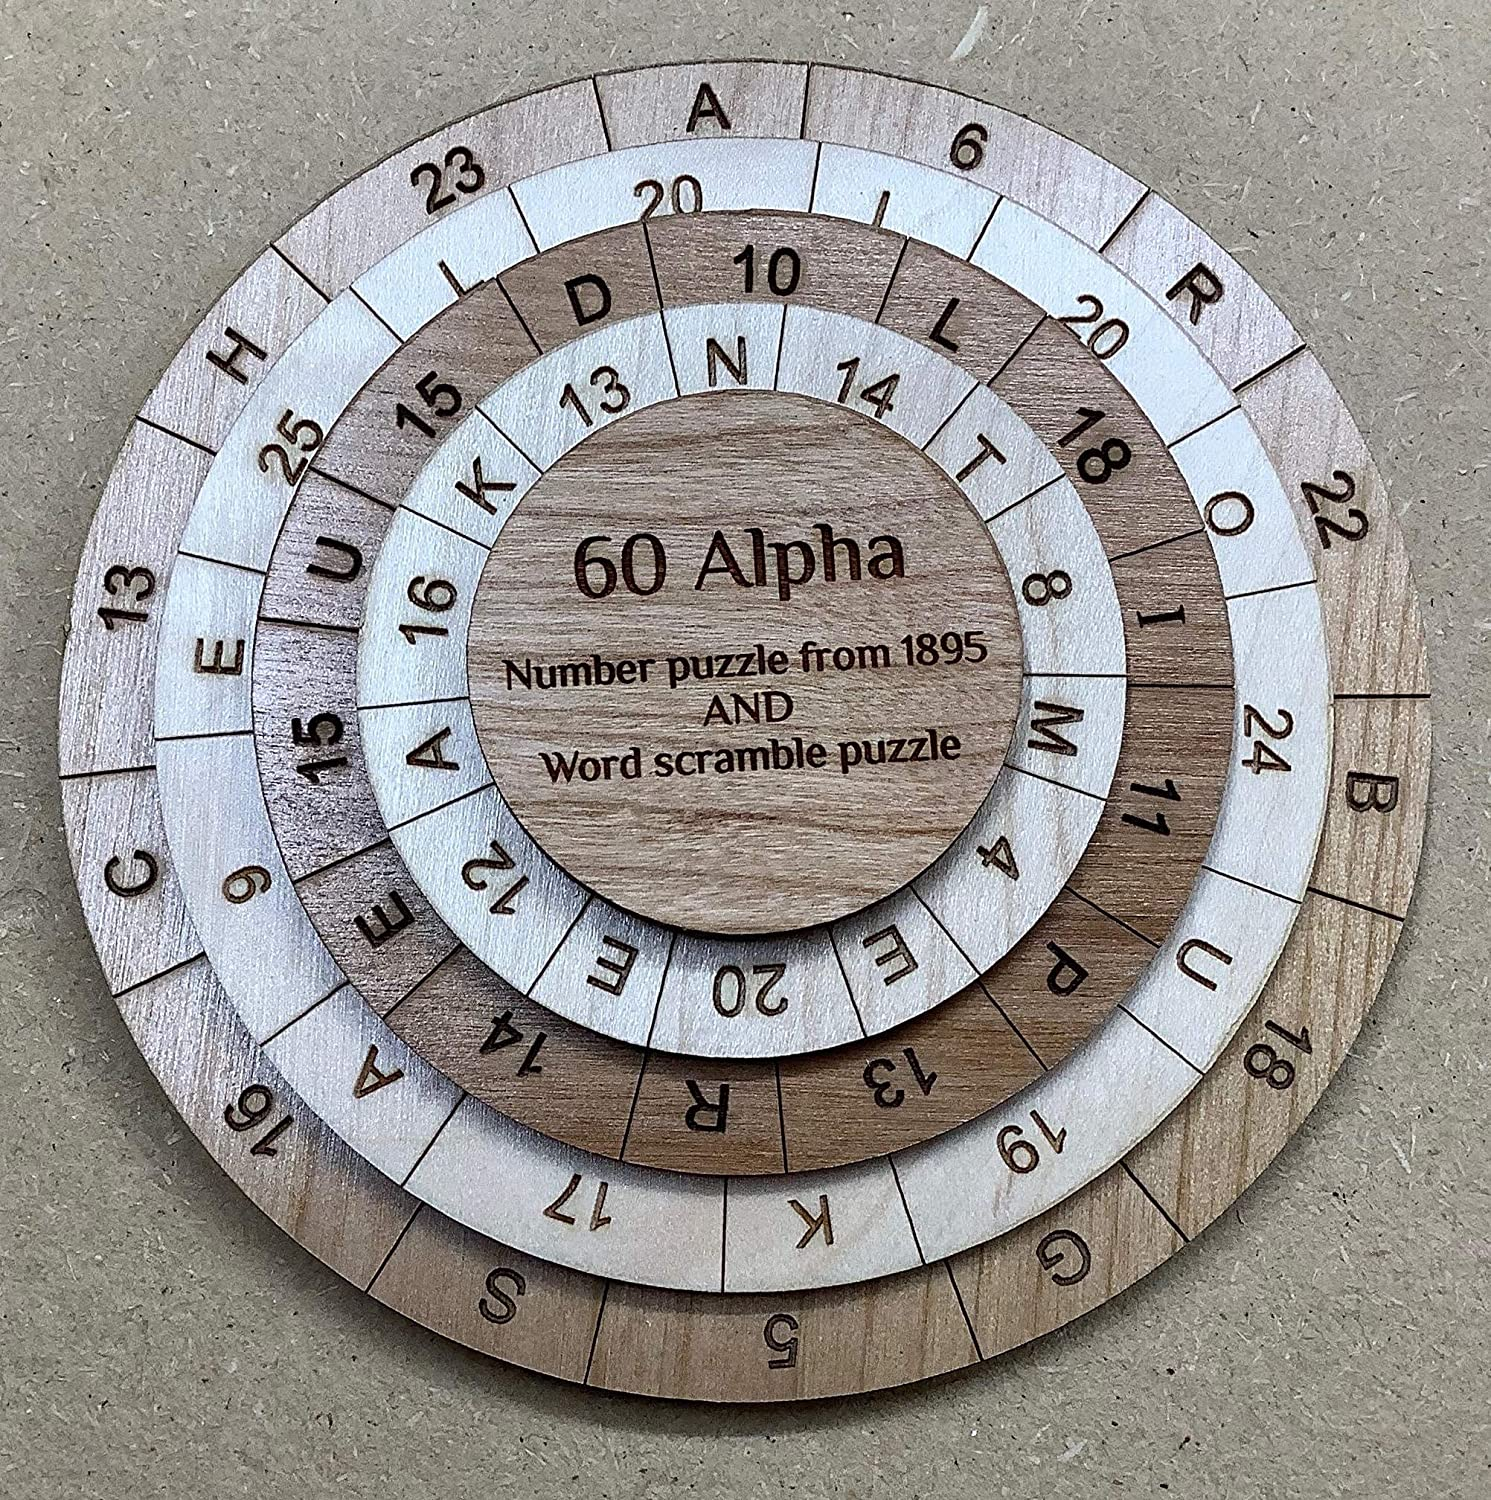 60 Alpha math puzzle from 1895 and a word search puzzle